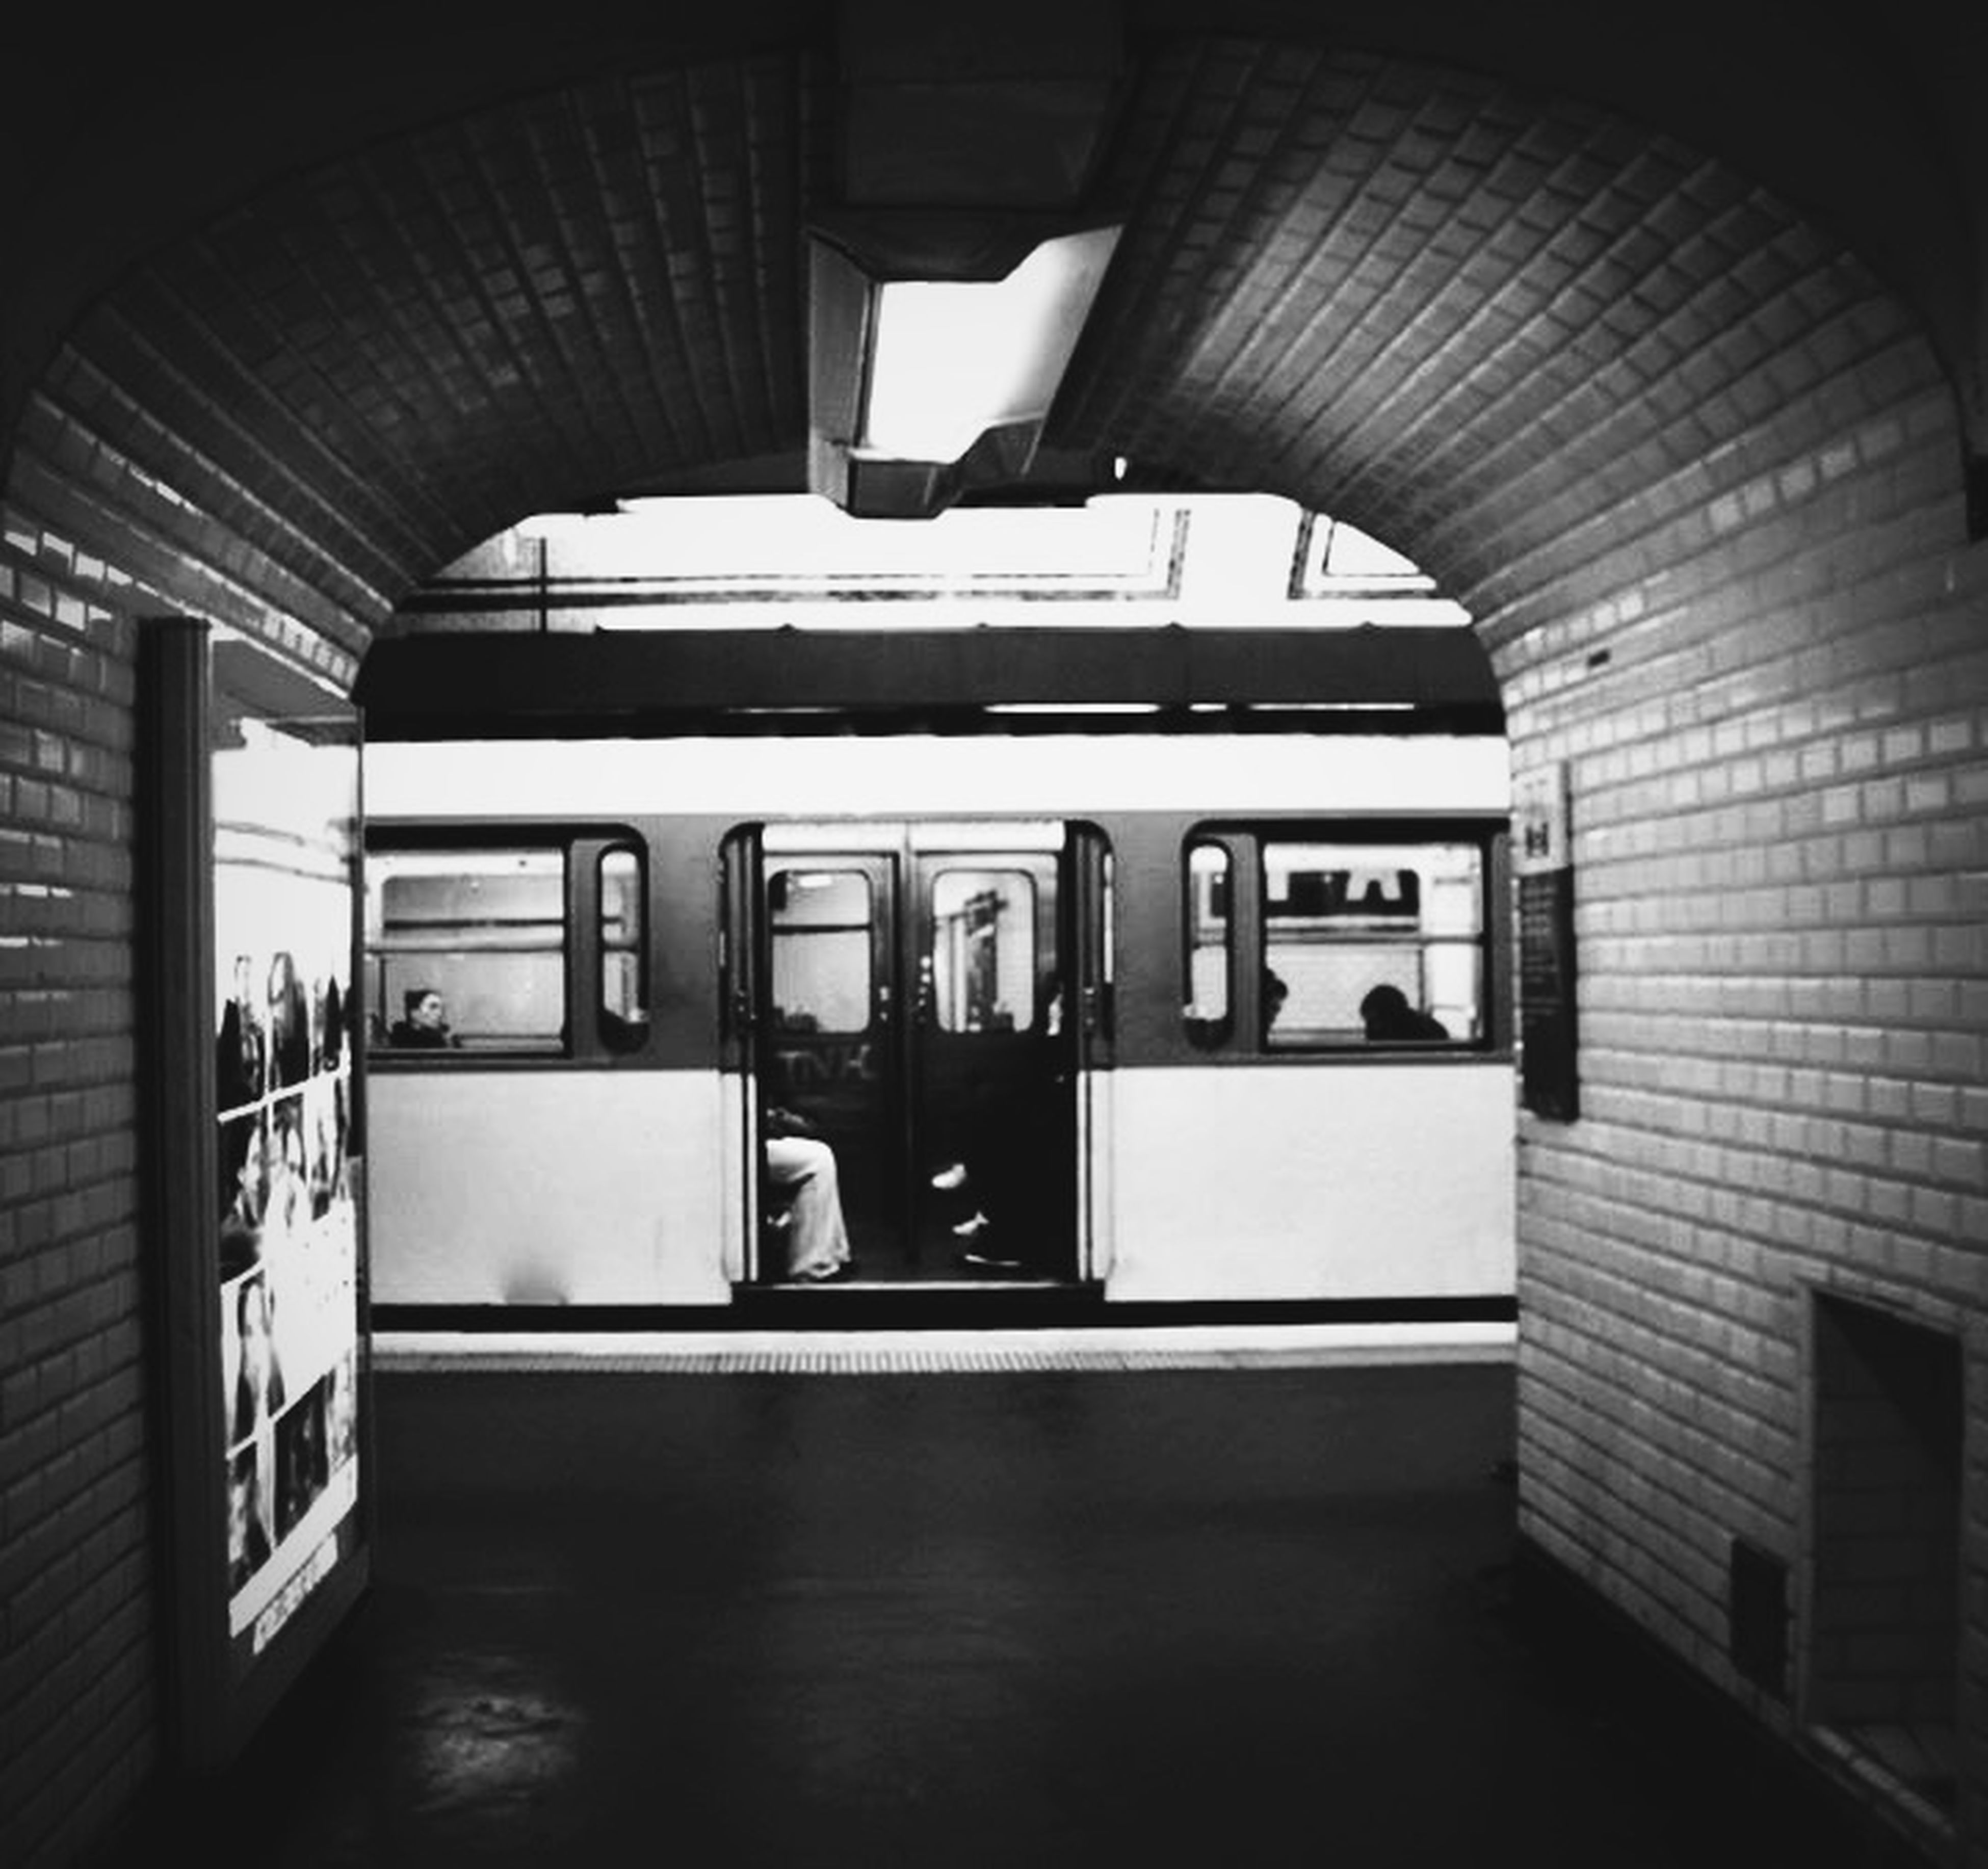 indoors, public transportation, transportation, illuminated, interior, architecture, built structure, empty, railroad station, rail transportation, train - vehicle, ceiling, mode of transport, absence, travel, in a row, technology, railroad station platform, no people, incidental people